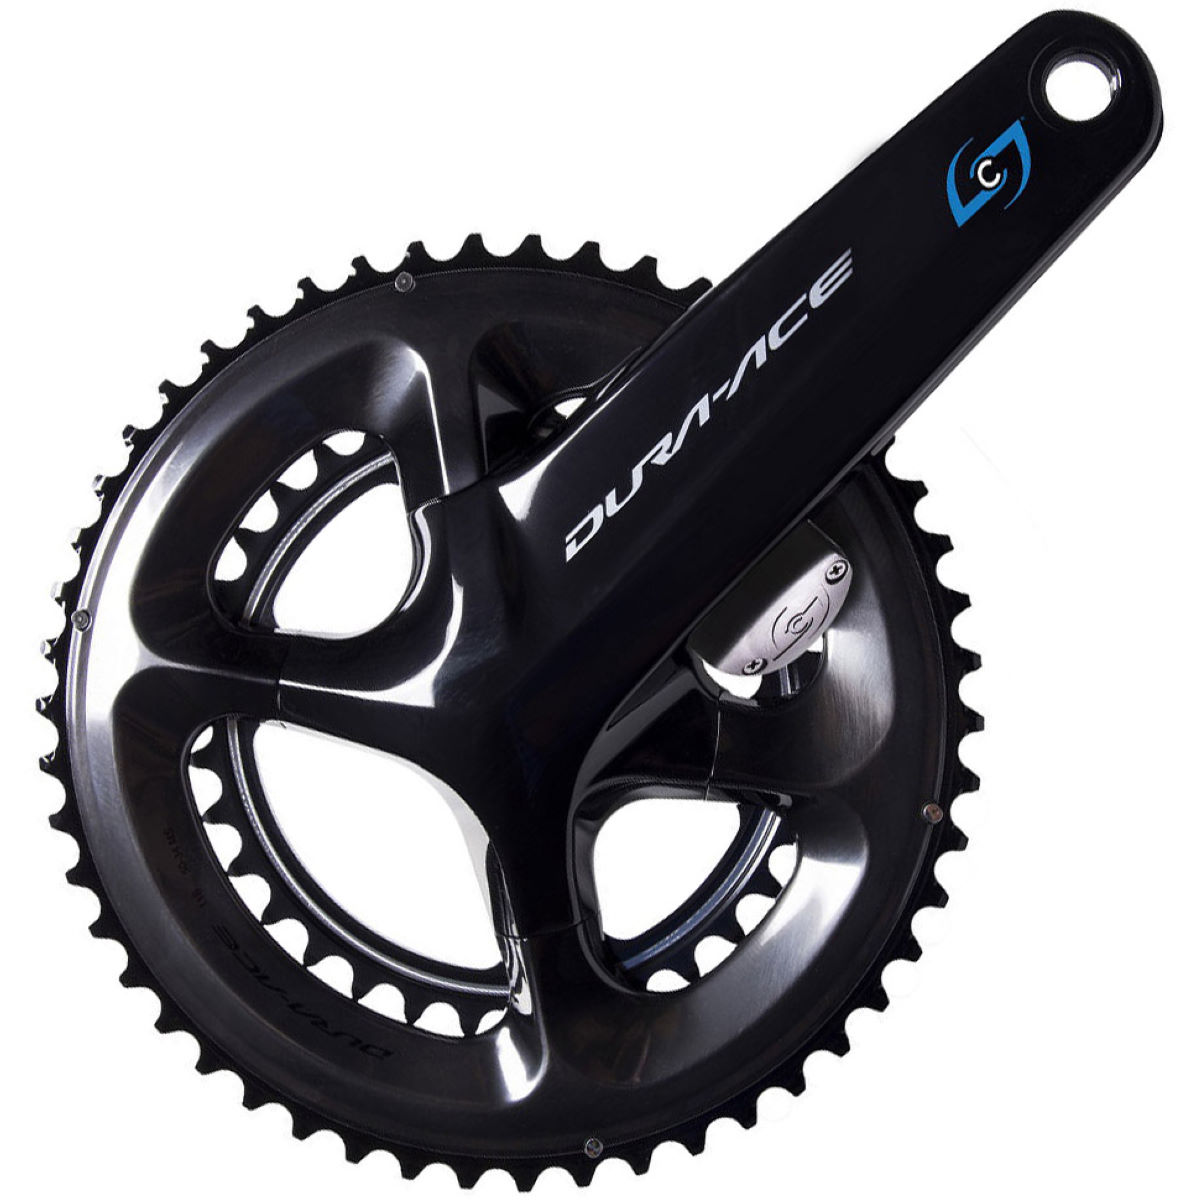 Stages Cycling Stages Cycling Power R G3 cw Chainrings Dura-Ace R9100   Power Meter Chainsets